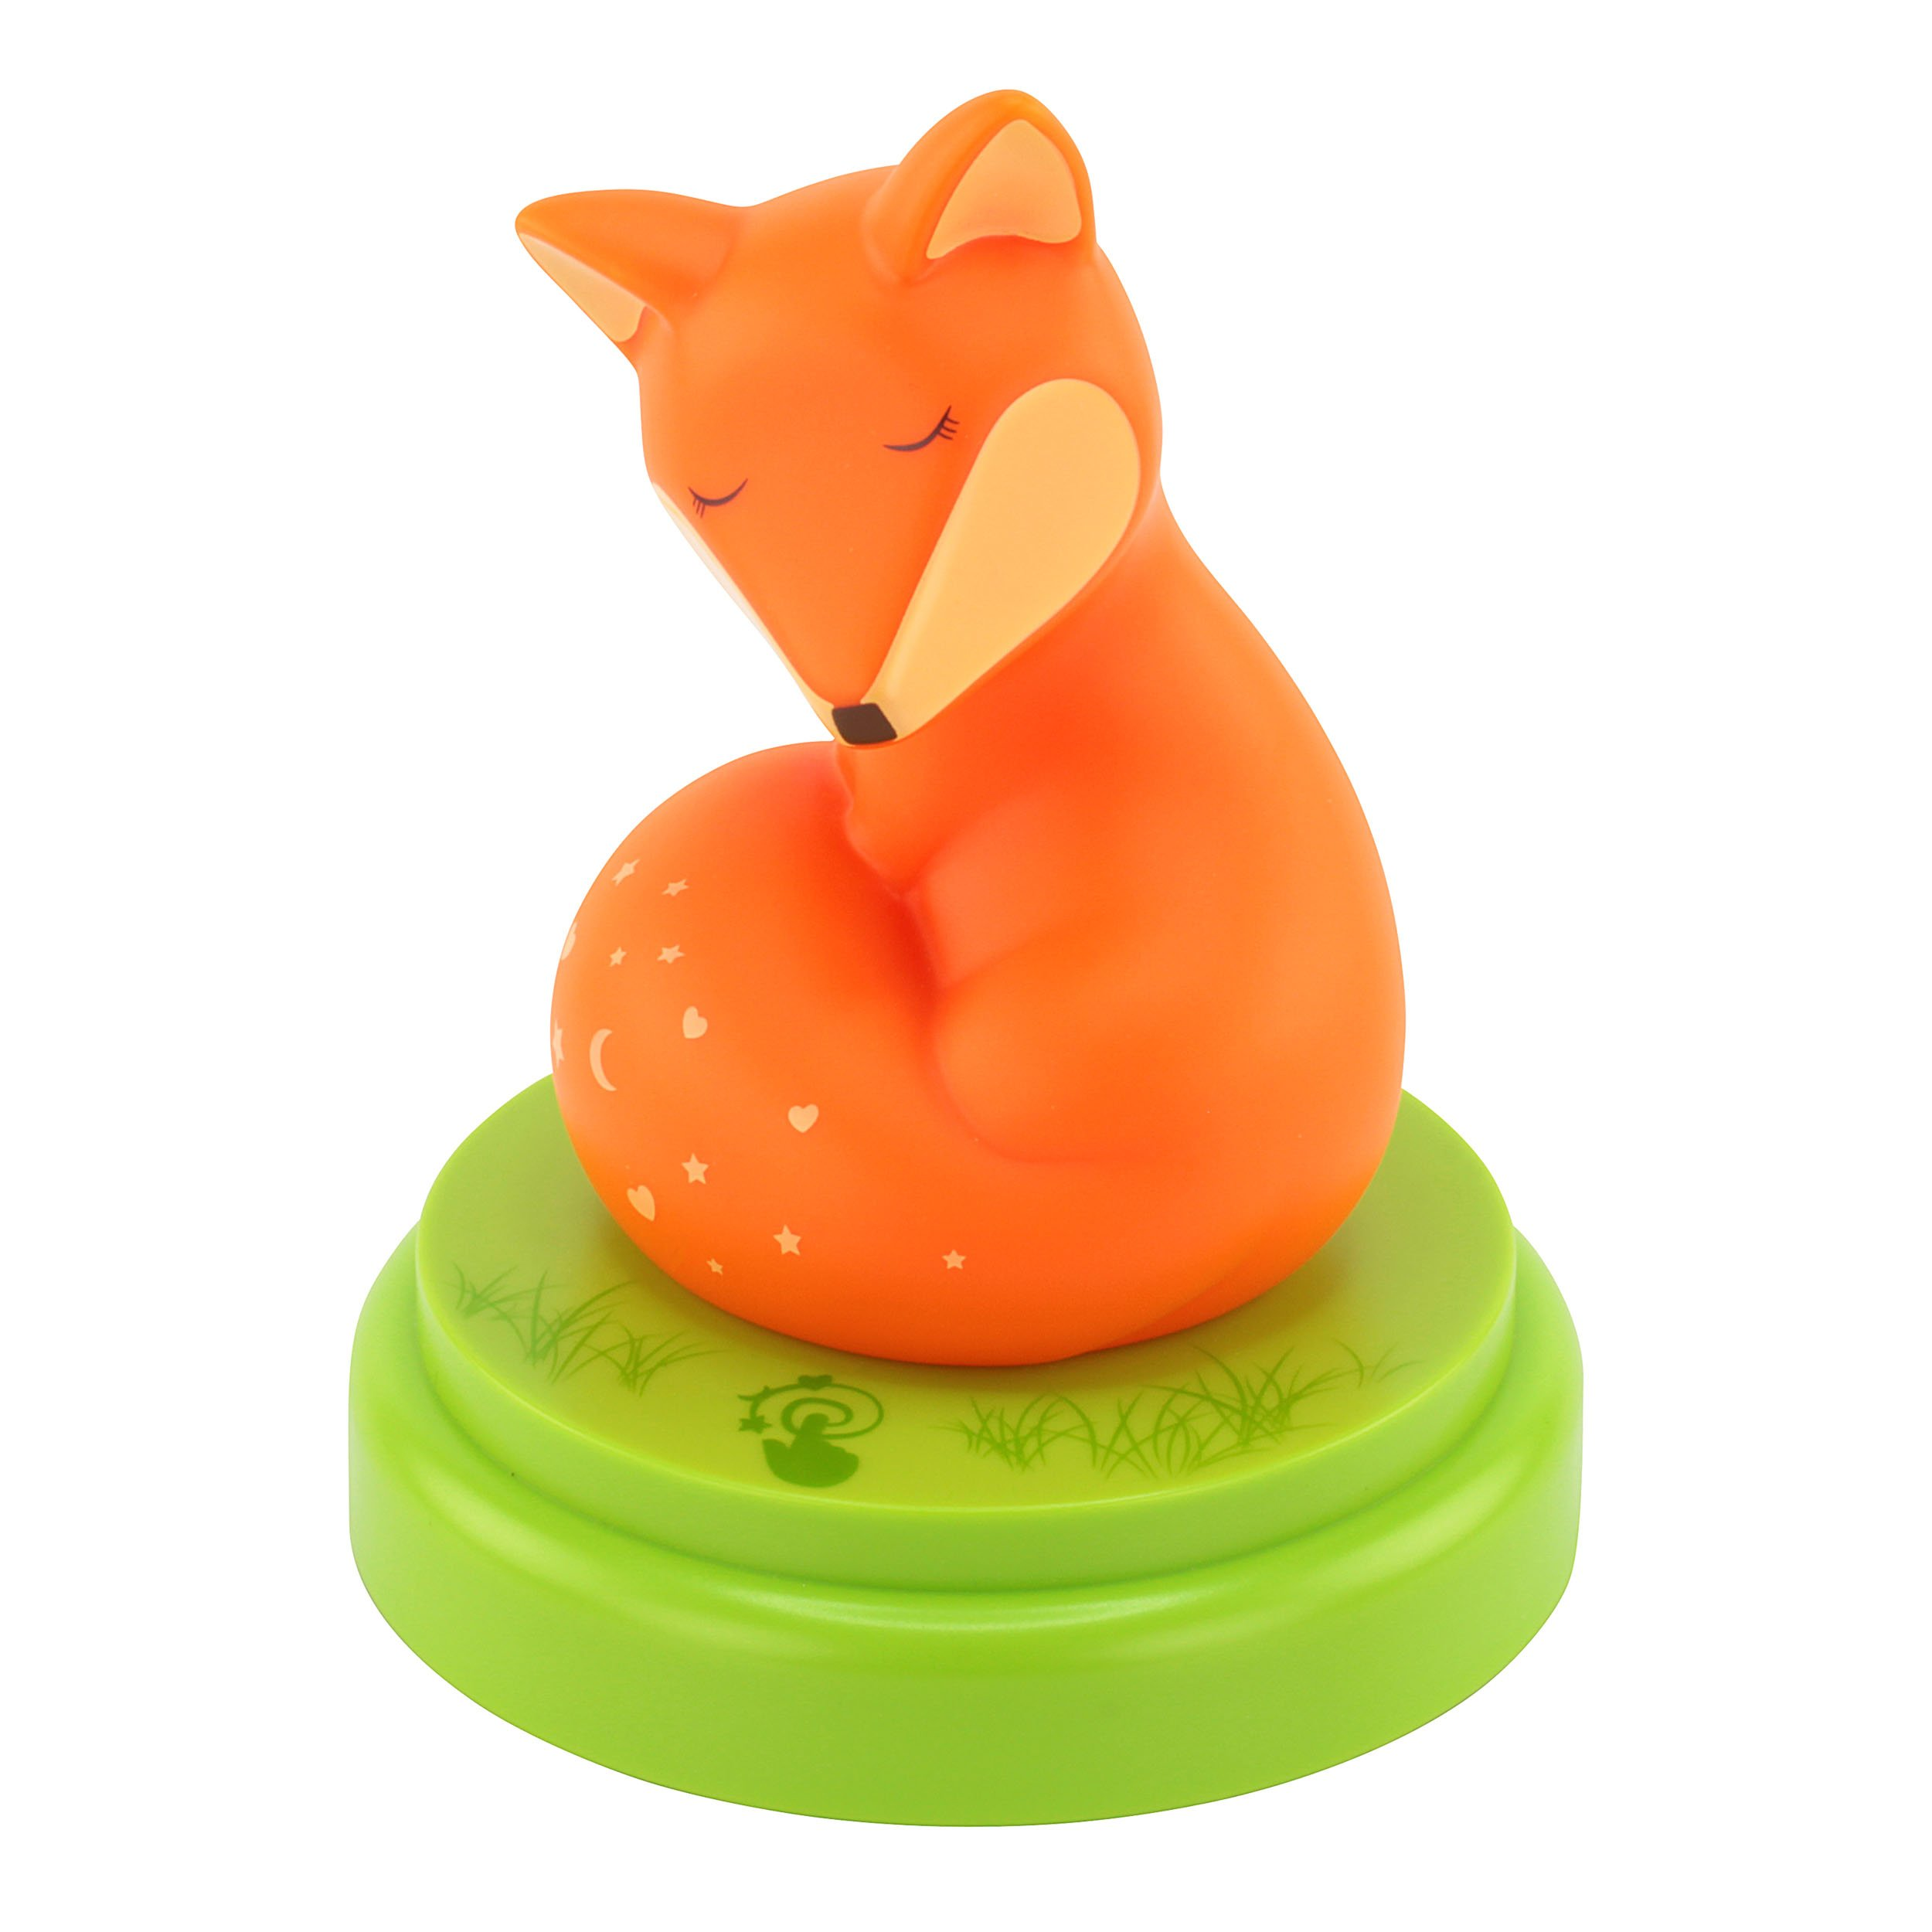 Ansmann ANSMANN 1800-0060 Cute Fox for Children / Babies Cartoon Orientation LED Night Light with Sleep Aid, Plastic, Light Brown - automatic timer - child / baby safety a priority